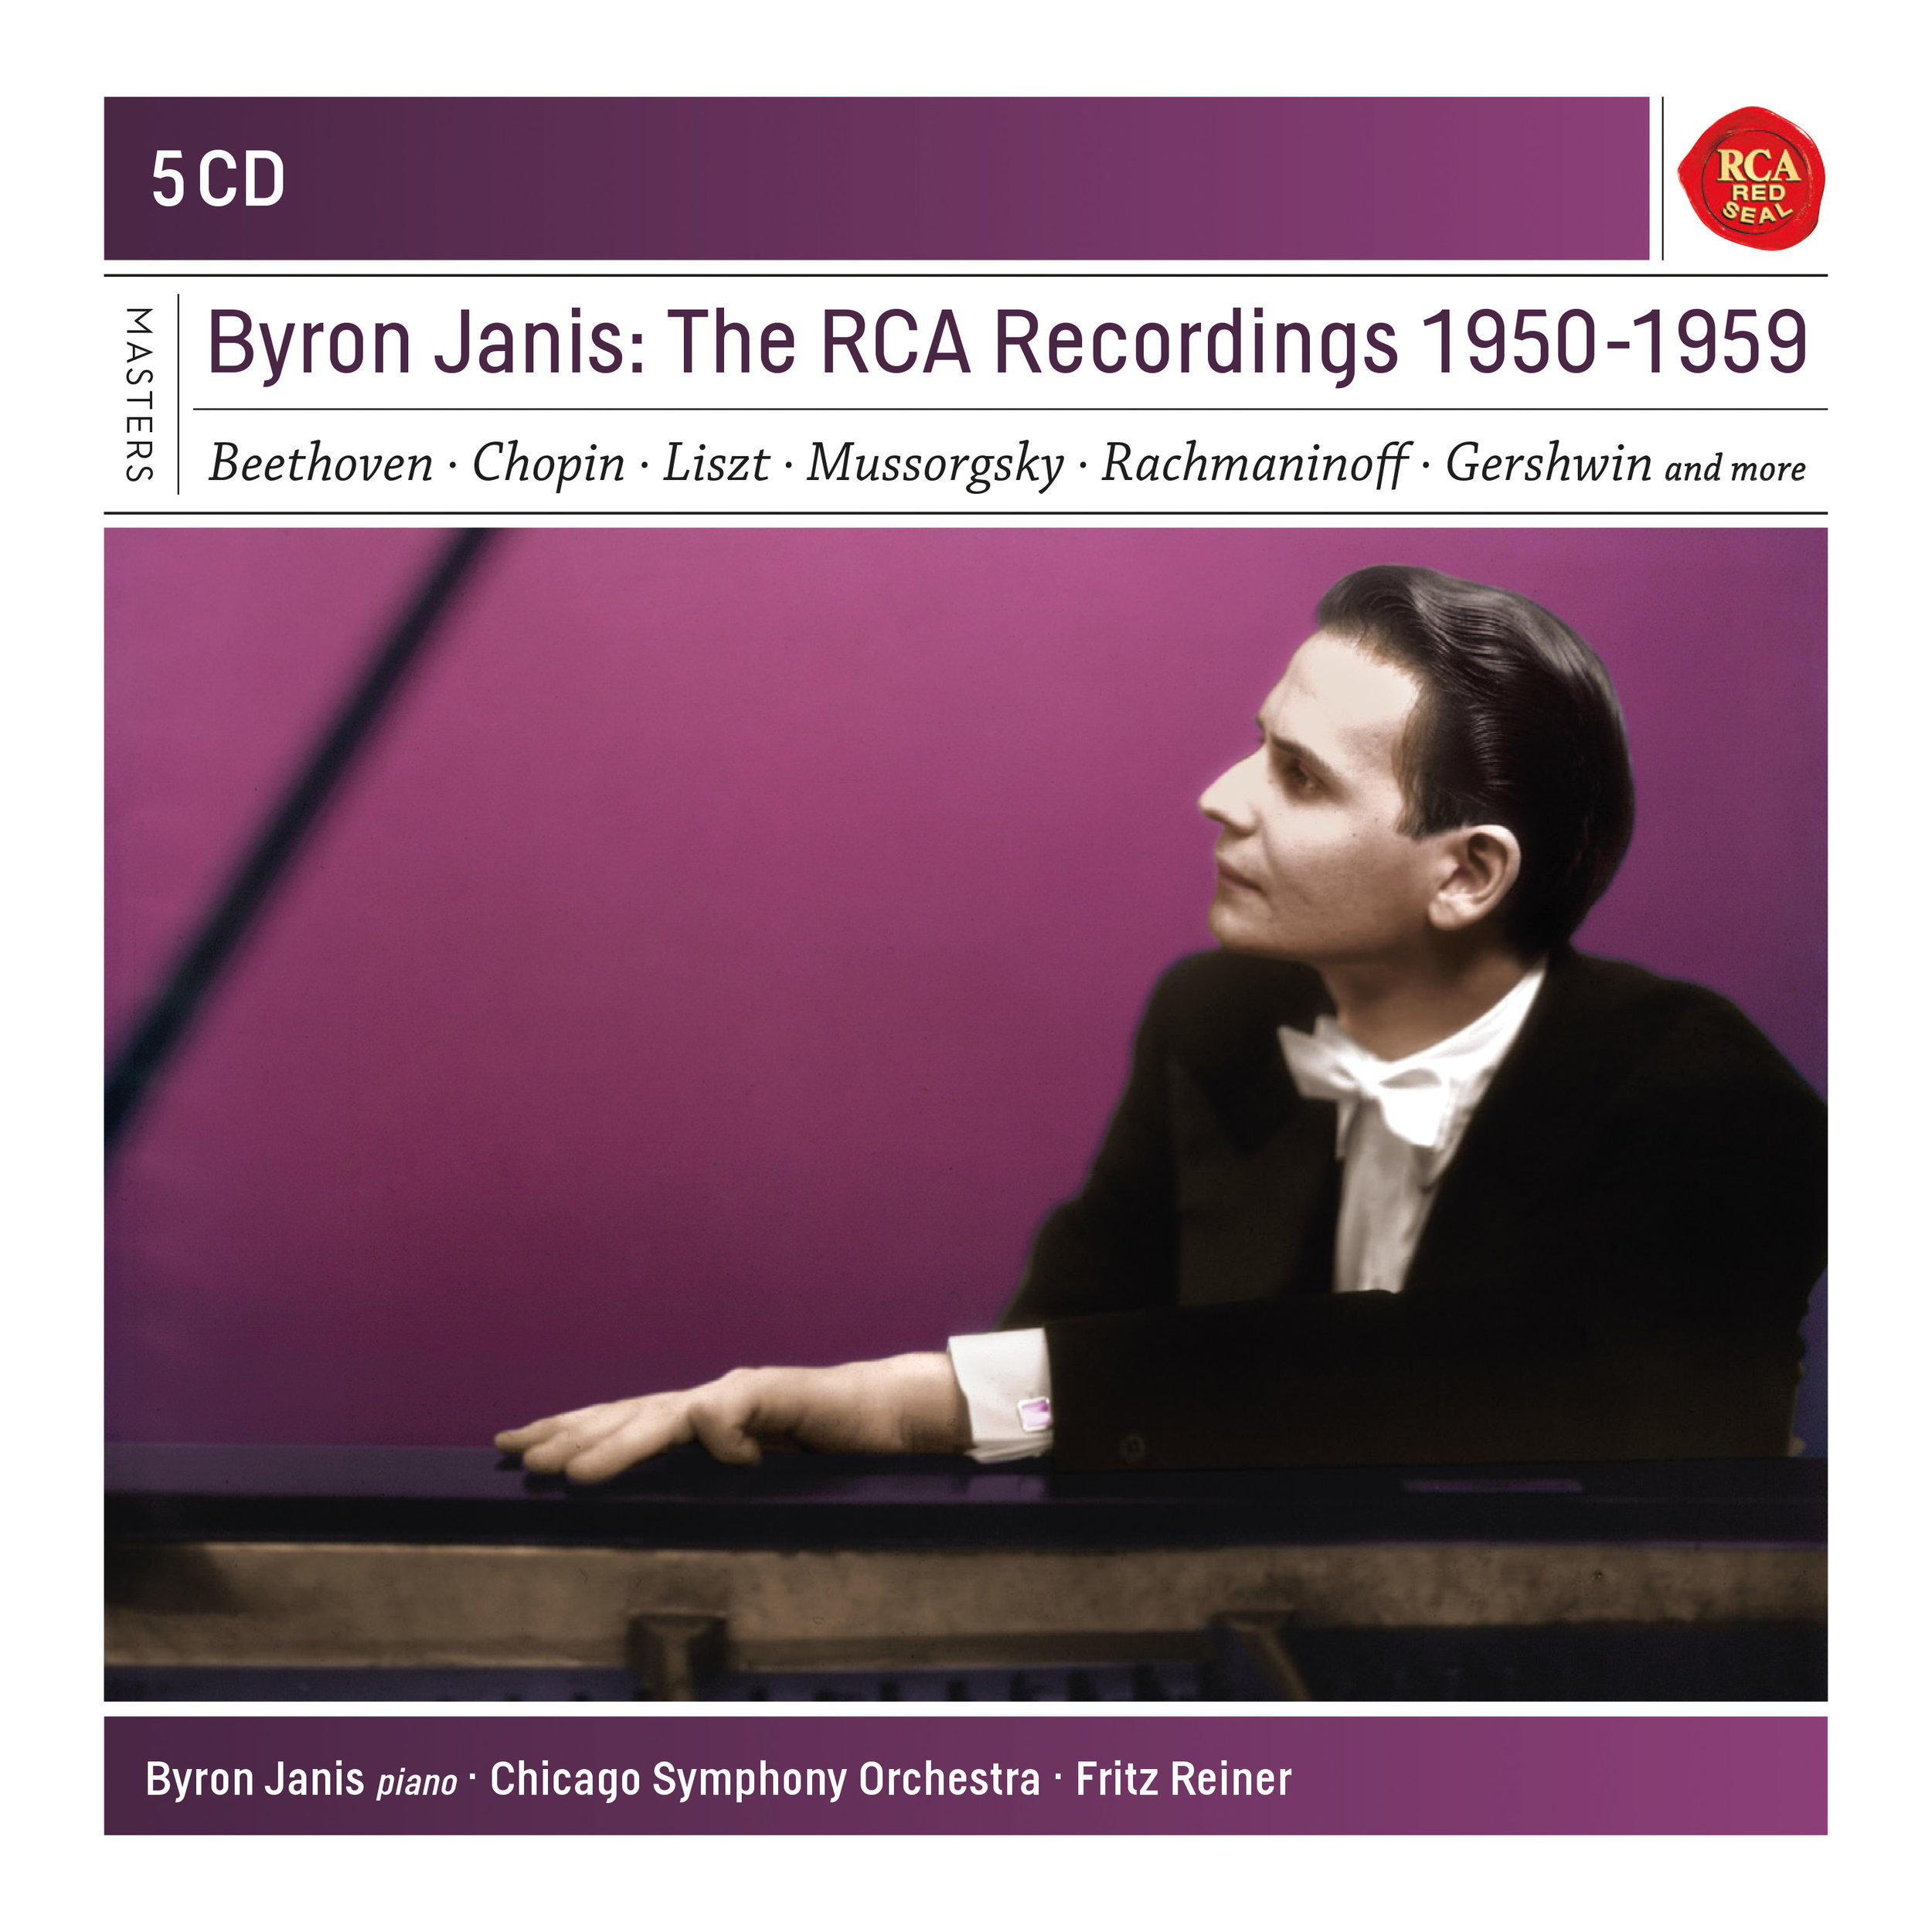 "Byron Janis: The RCA Recordings 1950-1959   CD 1 Schumann: Piano Concerto Liszt: Totentanz · Strauss: Burleske Chicago Symphony Orchestra · Fritz Reiner CD 2 Rachmaninoff: Piano Concertos Nos. 1 & 3 Chicago Symphony Orchestra · Fritz Reiner CD 3 Mussorgsky: Pictures at an Exhibition Liszt: Paraphrase de concert sur Rigoletto Liebestraum No. 3 · Hungarian Rhapsody No. 6 J. Strauss II / Schulz-Evler: Concert Arabesques Gershwin: Rhapsody in Blue Hugo Winterhalter and his Orchestra CD 4 Beethoven: Piano Sonata No. 17 ""The Tempest"" Piano Sonata No. 21 ""Waldstein"" Piano Sonata No. 30 Schubert: Impromptu in E-flat major Brahms: Waltzes op. 39: Nos. 1, 2, 6 & 15 CD 5 Chopin: Piano Sonata No. 2 ""Funeral March"" Impromptu No. 1 · ""Black Keys"" Étude Mazurka in A minor · Scherzo No. 3 Grande Valse brillante in A minor Waltz in E minor · Ballade No. 1 · Étude in F major"